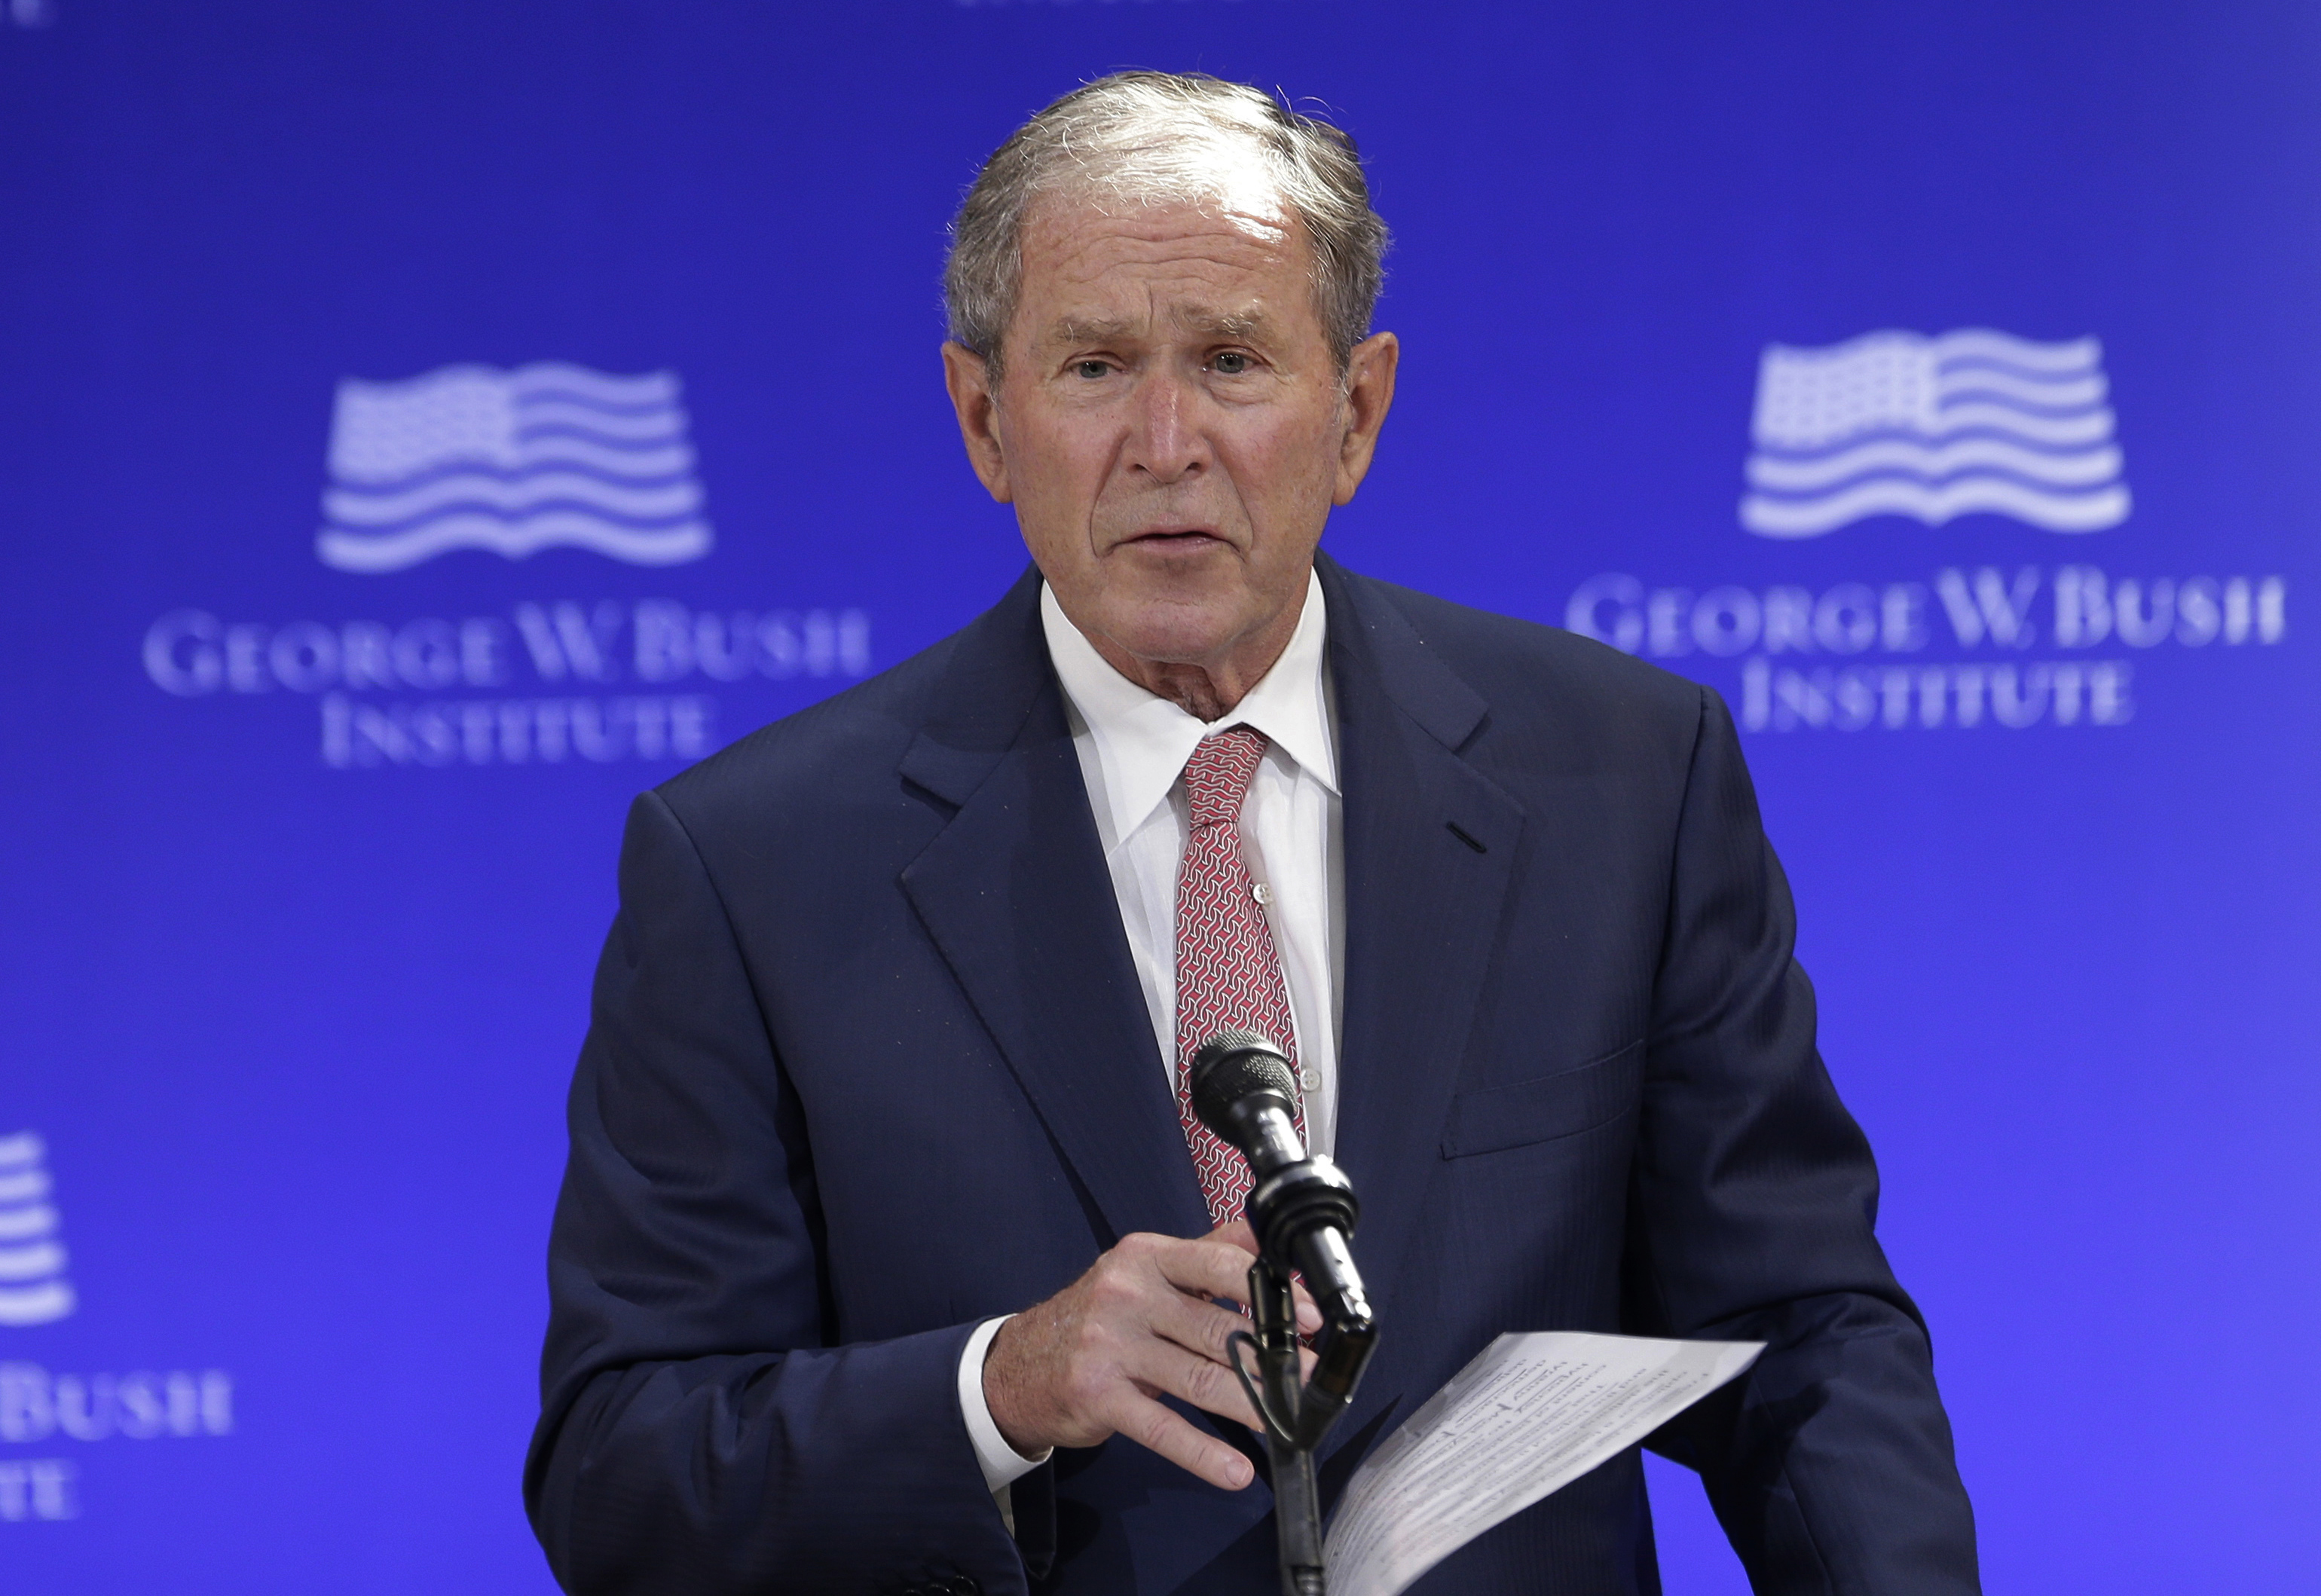 George W. Bush joins organization in charge of developing War on Terro